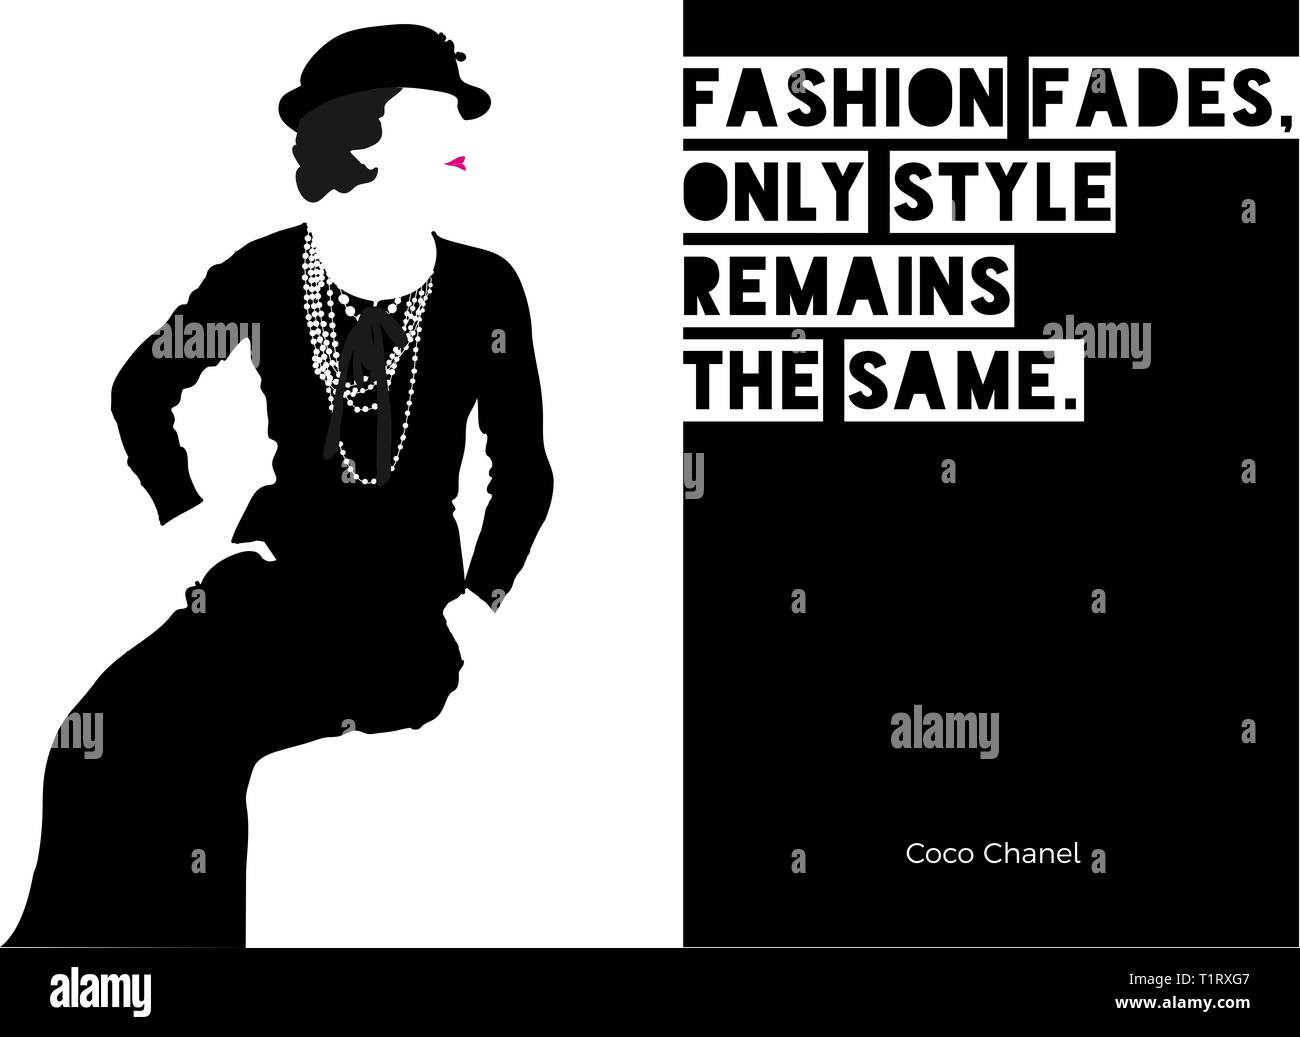 c97b18f418e Coco Chanel Dress Stock Photos   Coco Chanel Dress Stock Images - Alamy